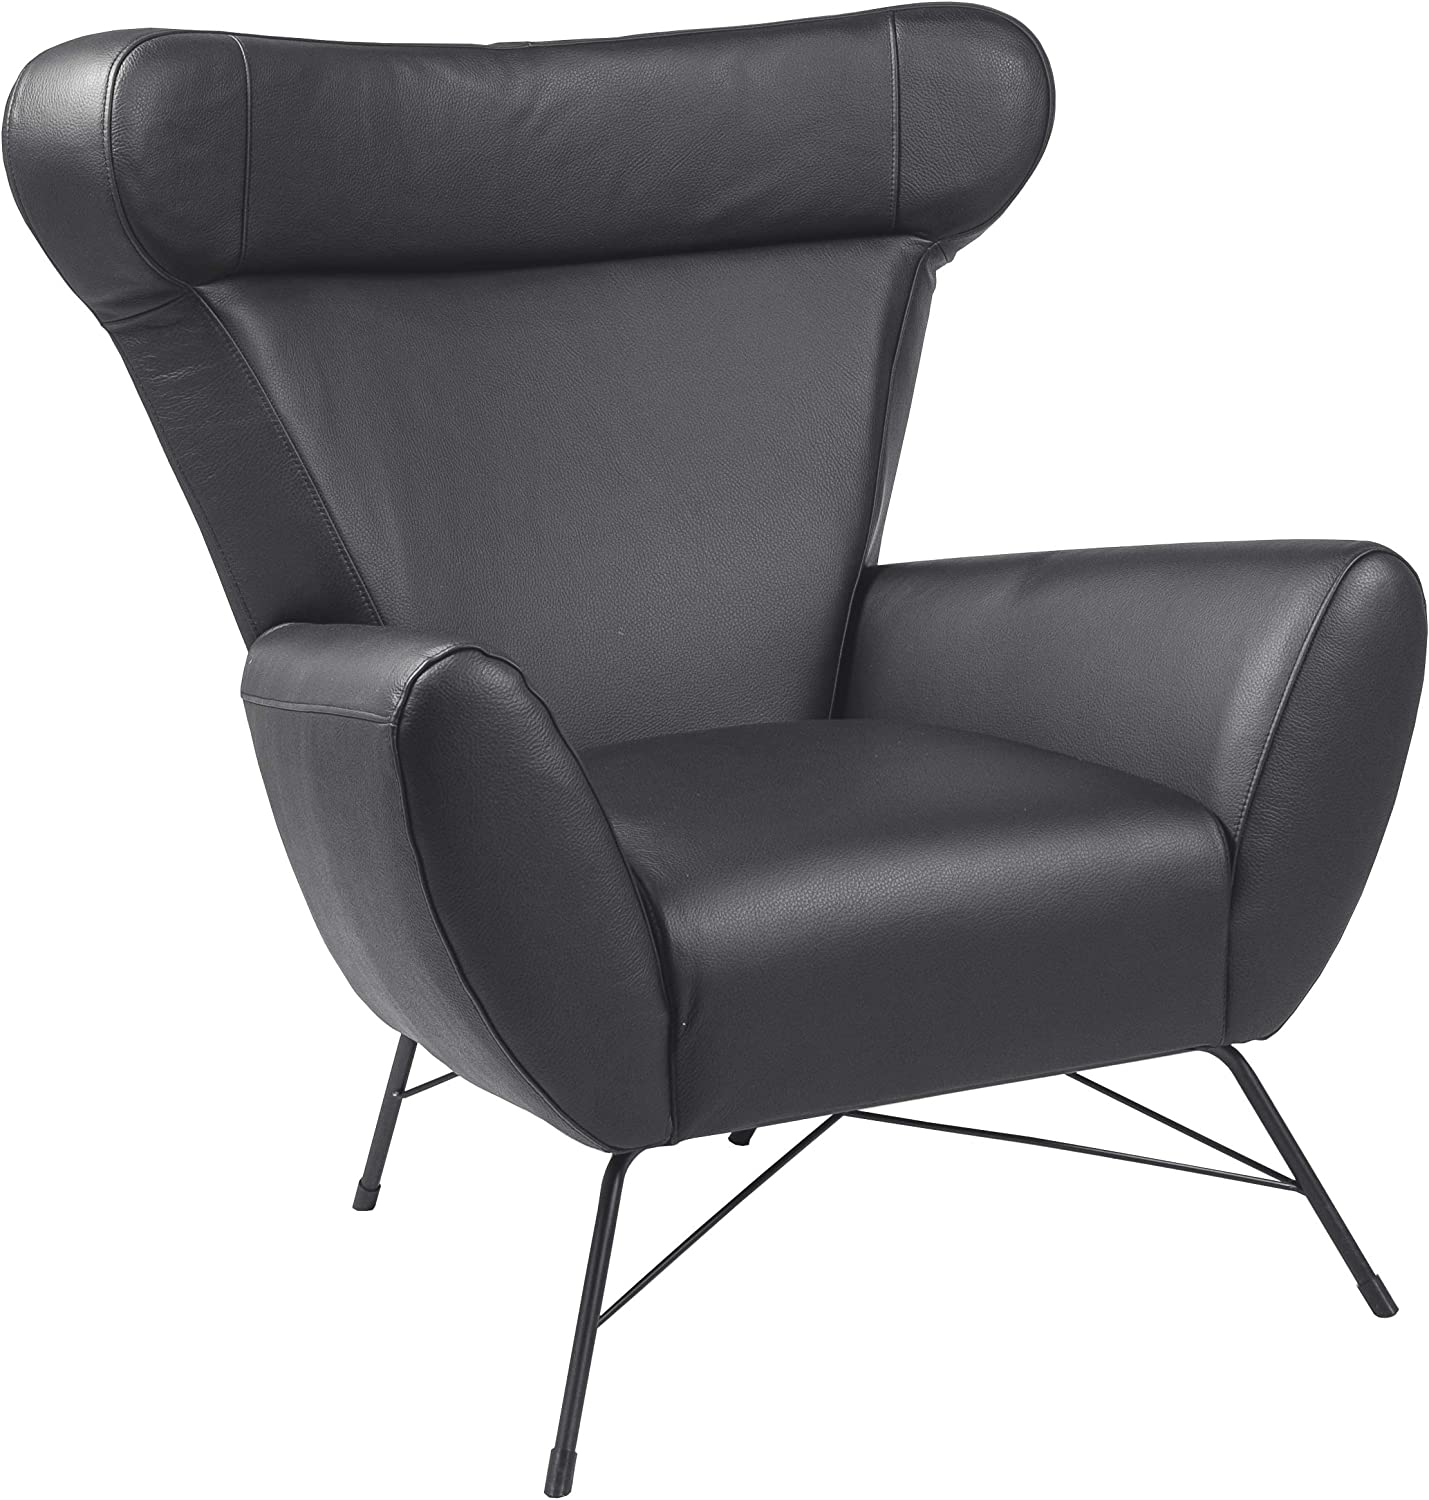 Amazon Brand - Movian Galga - Silla relax, 90 x 105 x 98 cm (largo ...